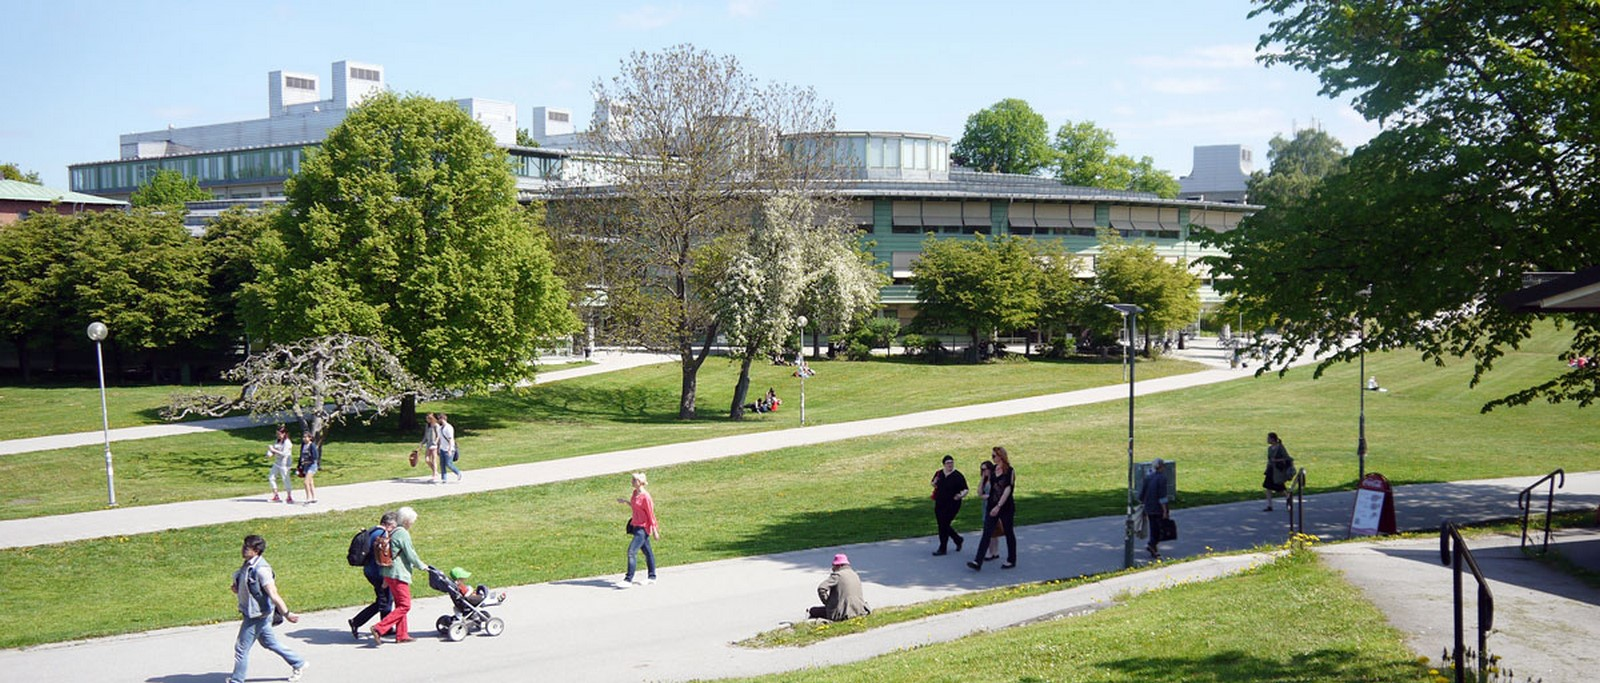 10 Masters options for architects interested in Landscape Architecture - Sheet10